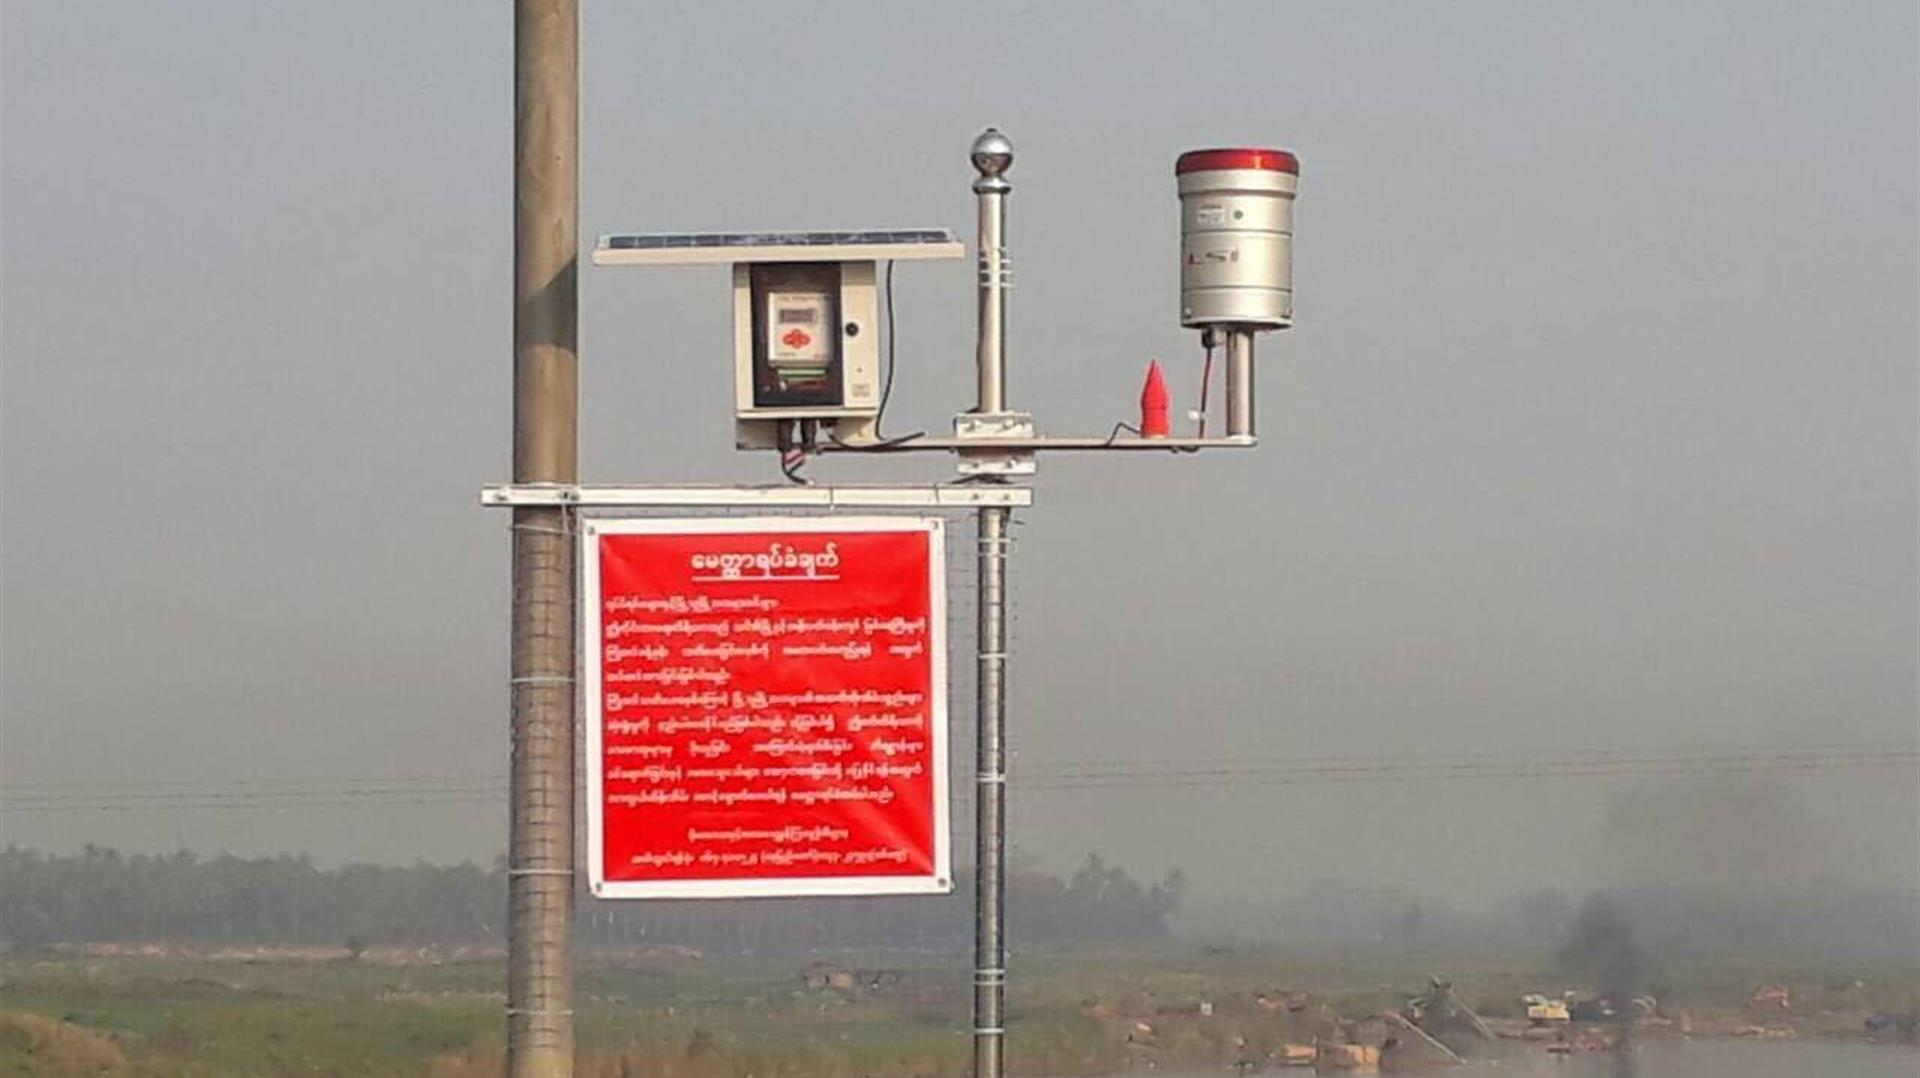 The weather station net in Myanmar